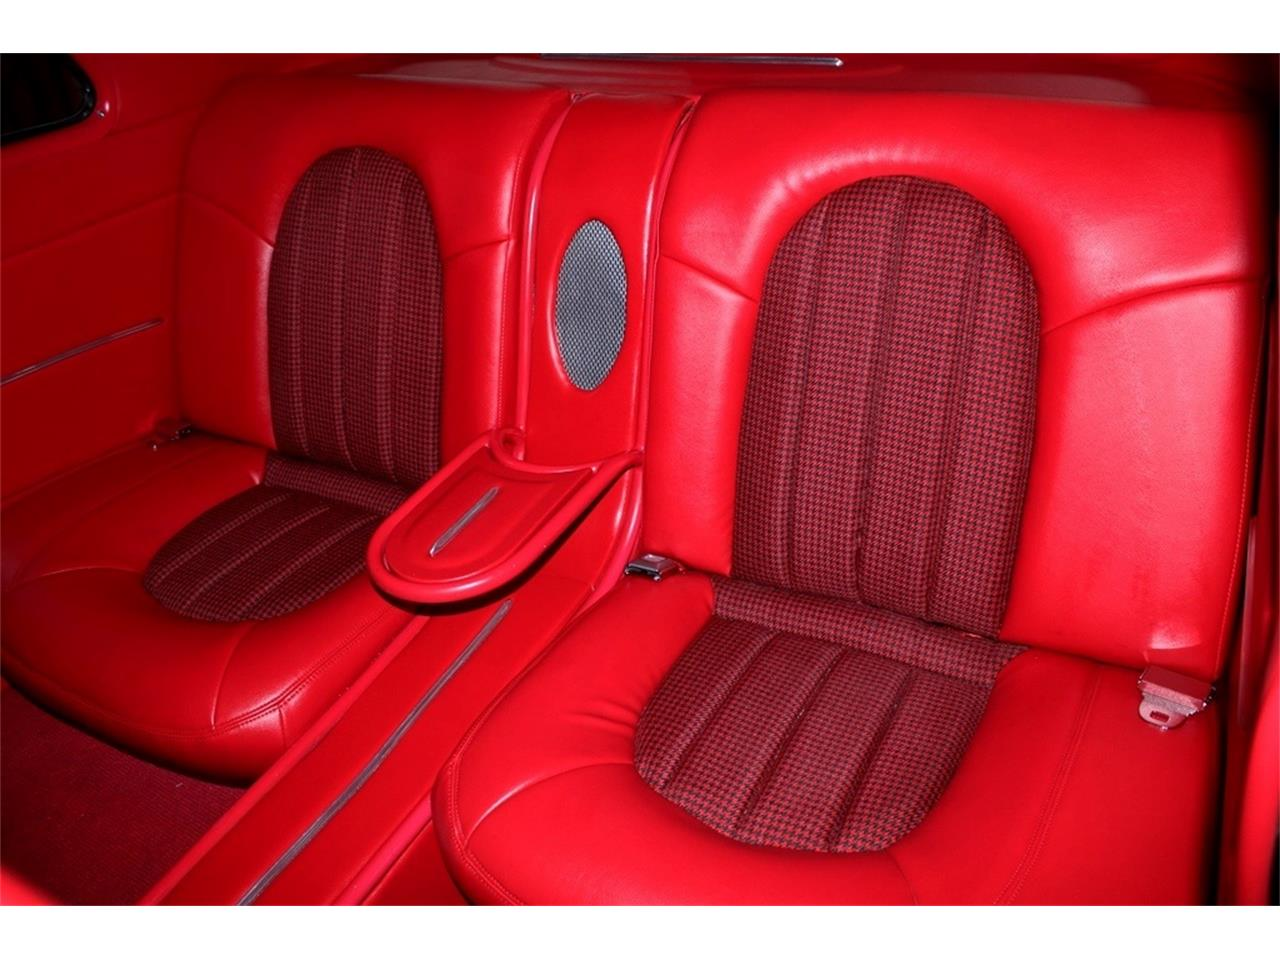 Large Picture of Classic 1950 Chevrolet Styleline Deluxe located in New Braunfels Texas - $79,900.00 Offered by A&E Classic Cars - QQK1